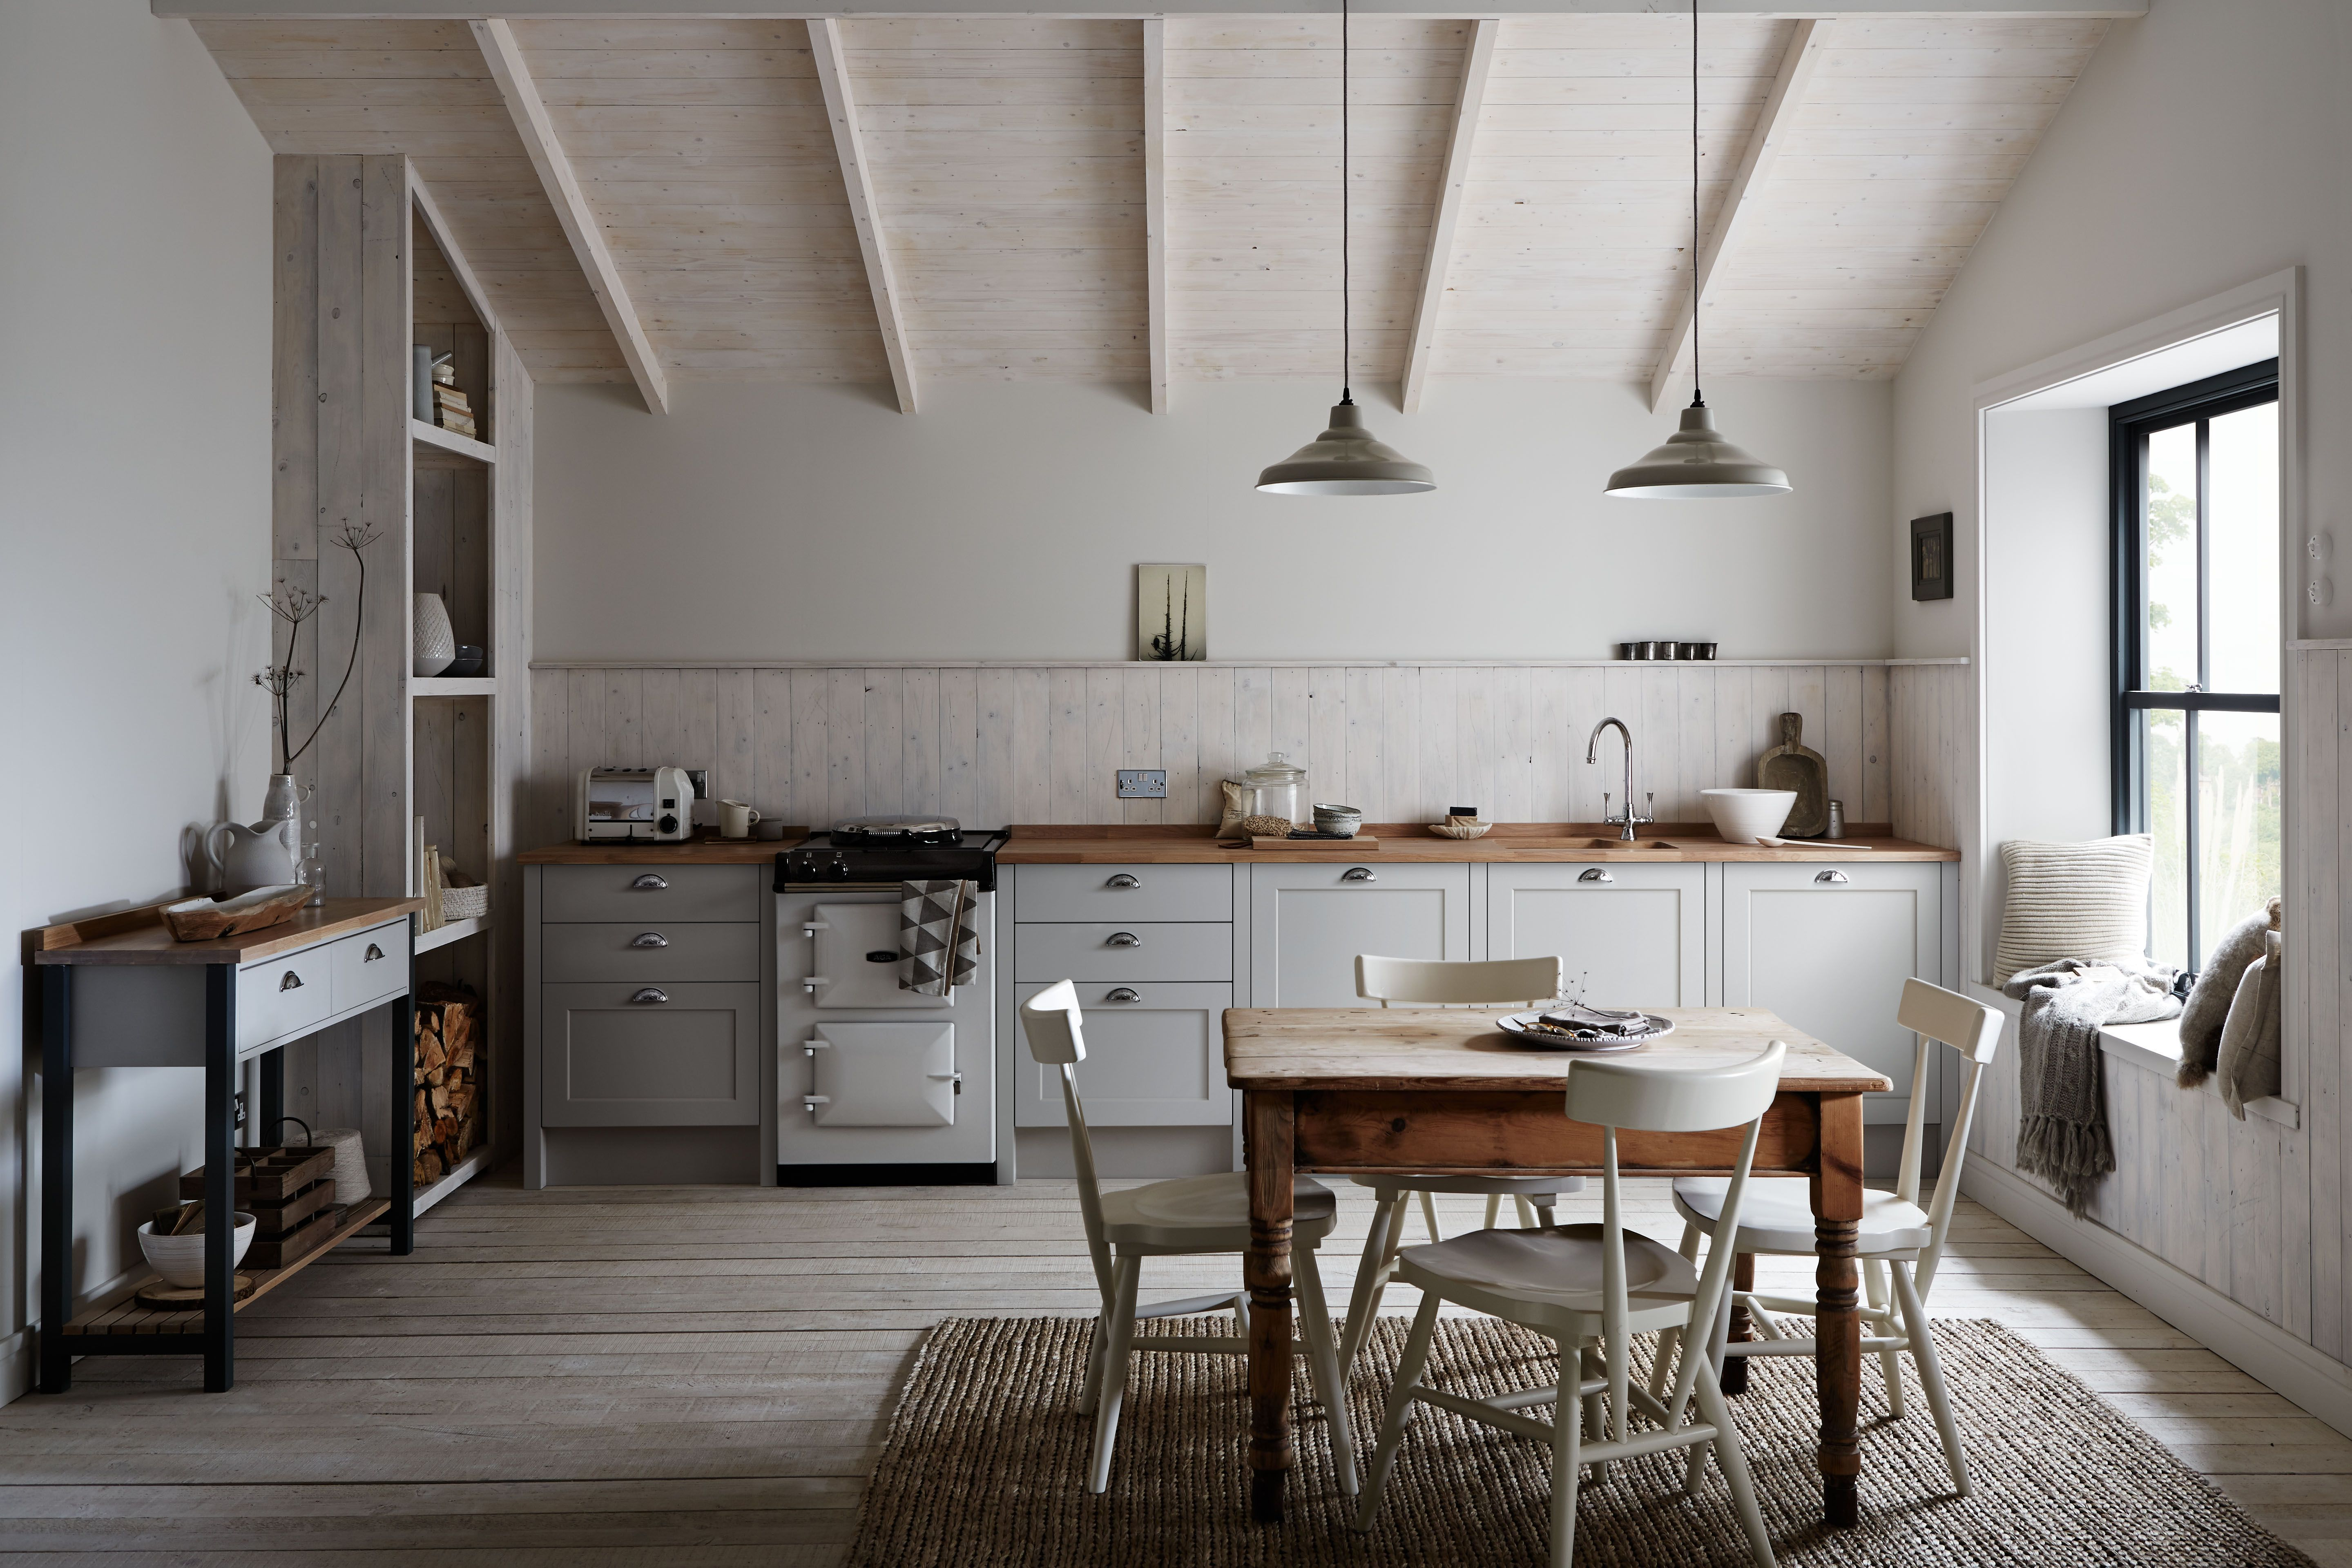 The Allendale Dove Grey Kitchen From The Shaker Collection By Howdens Joinery To Abide